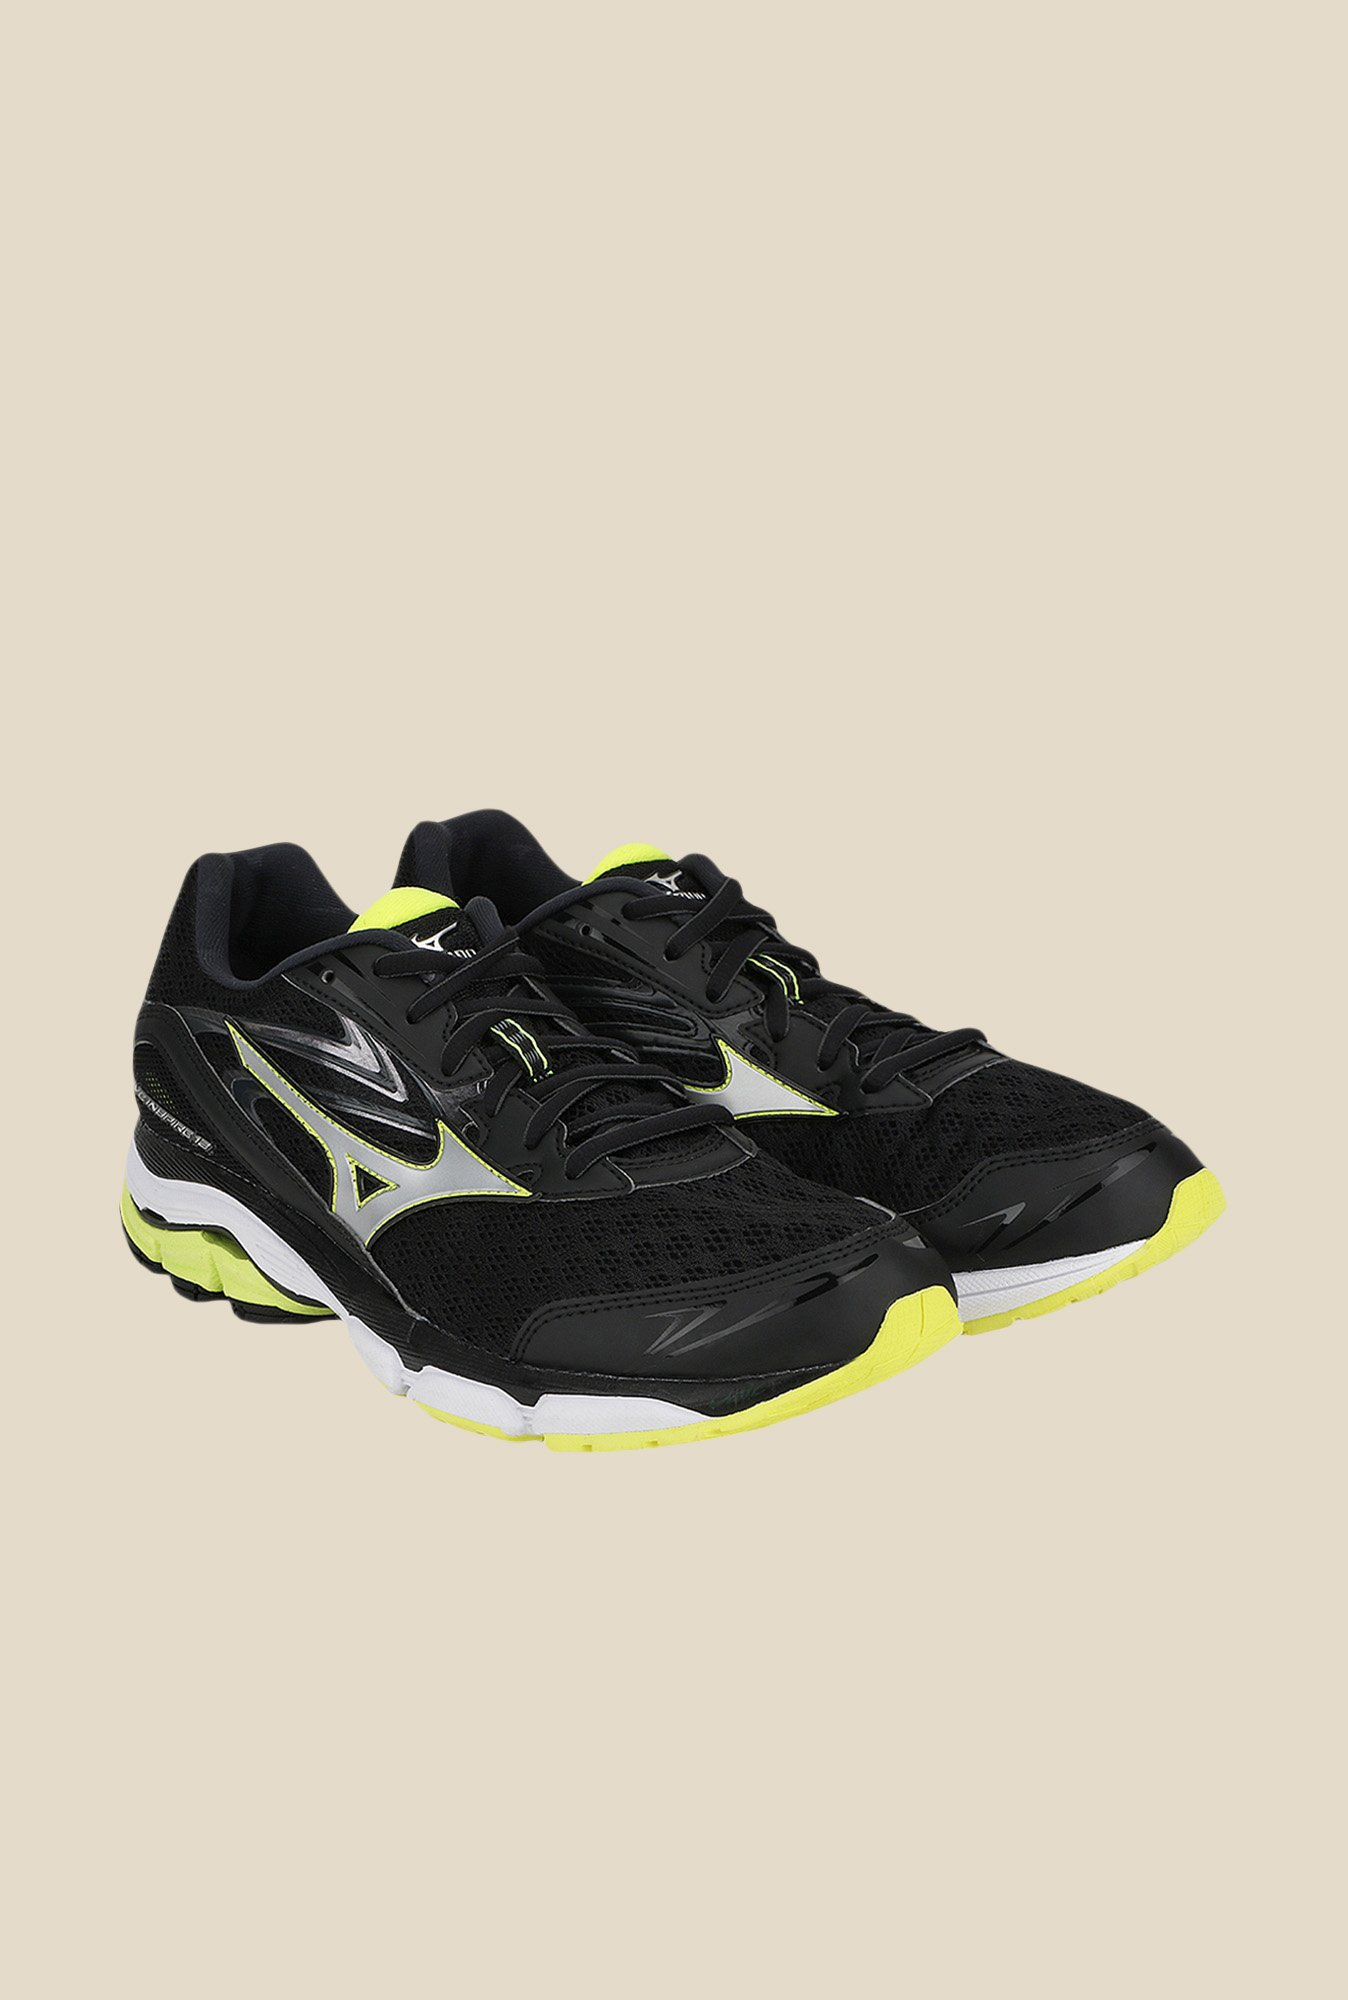 Mizuno Wave Inspire 12 Black & Silver Running Shoes